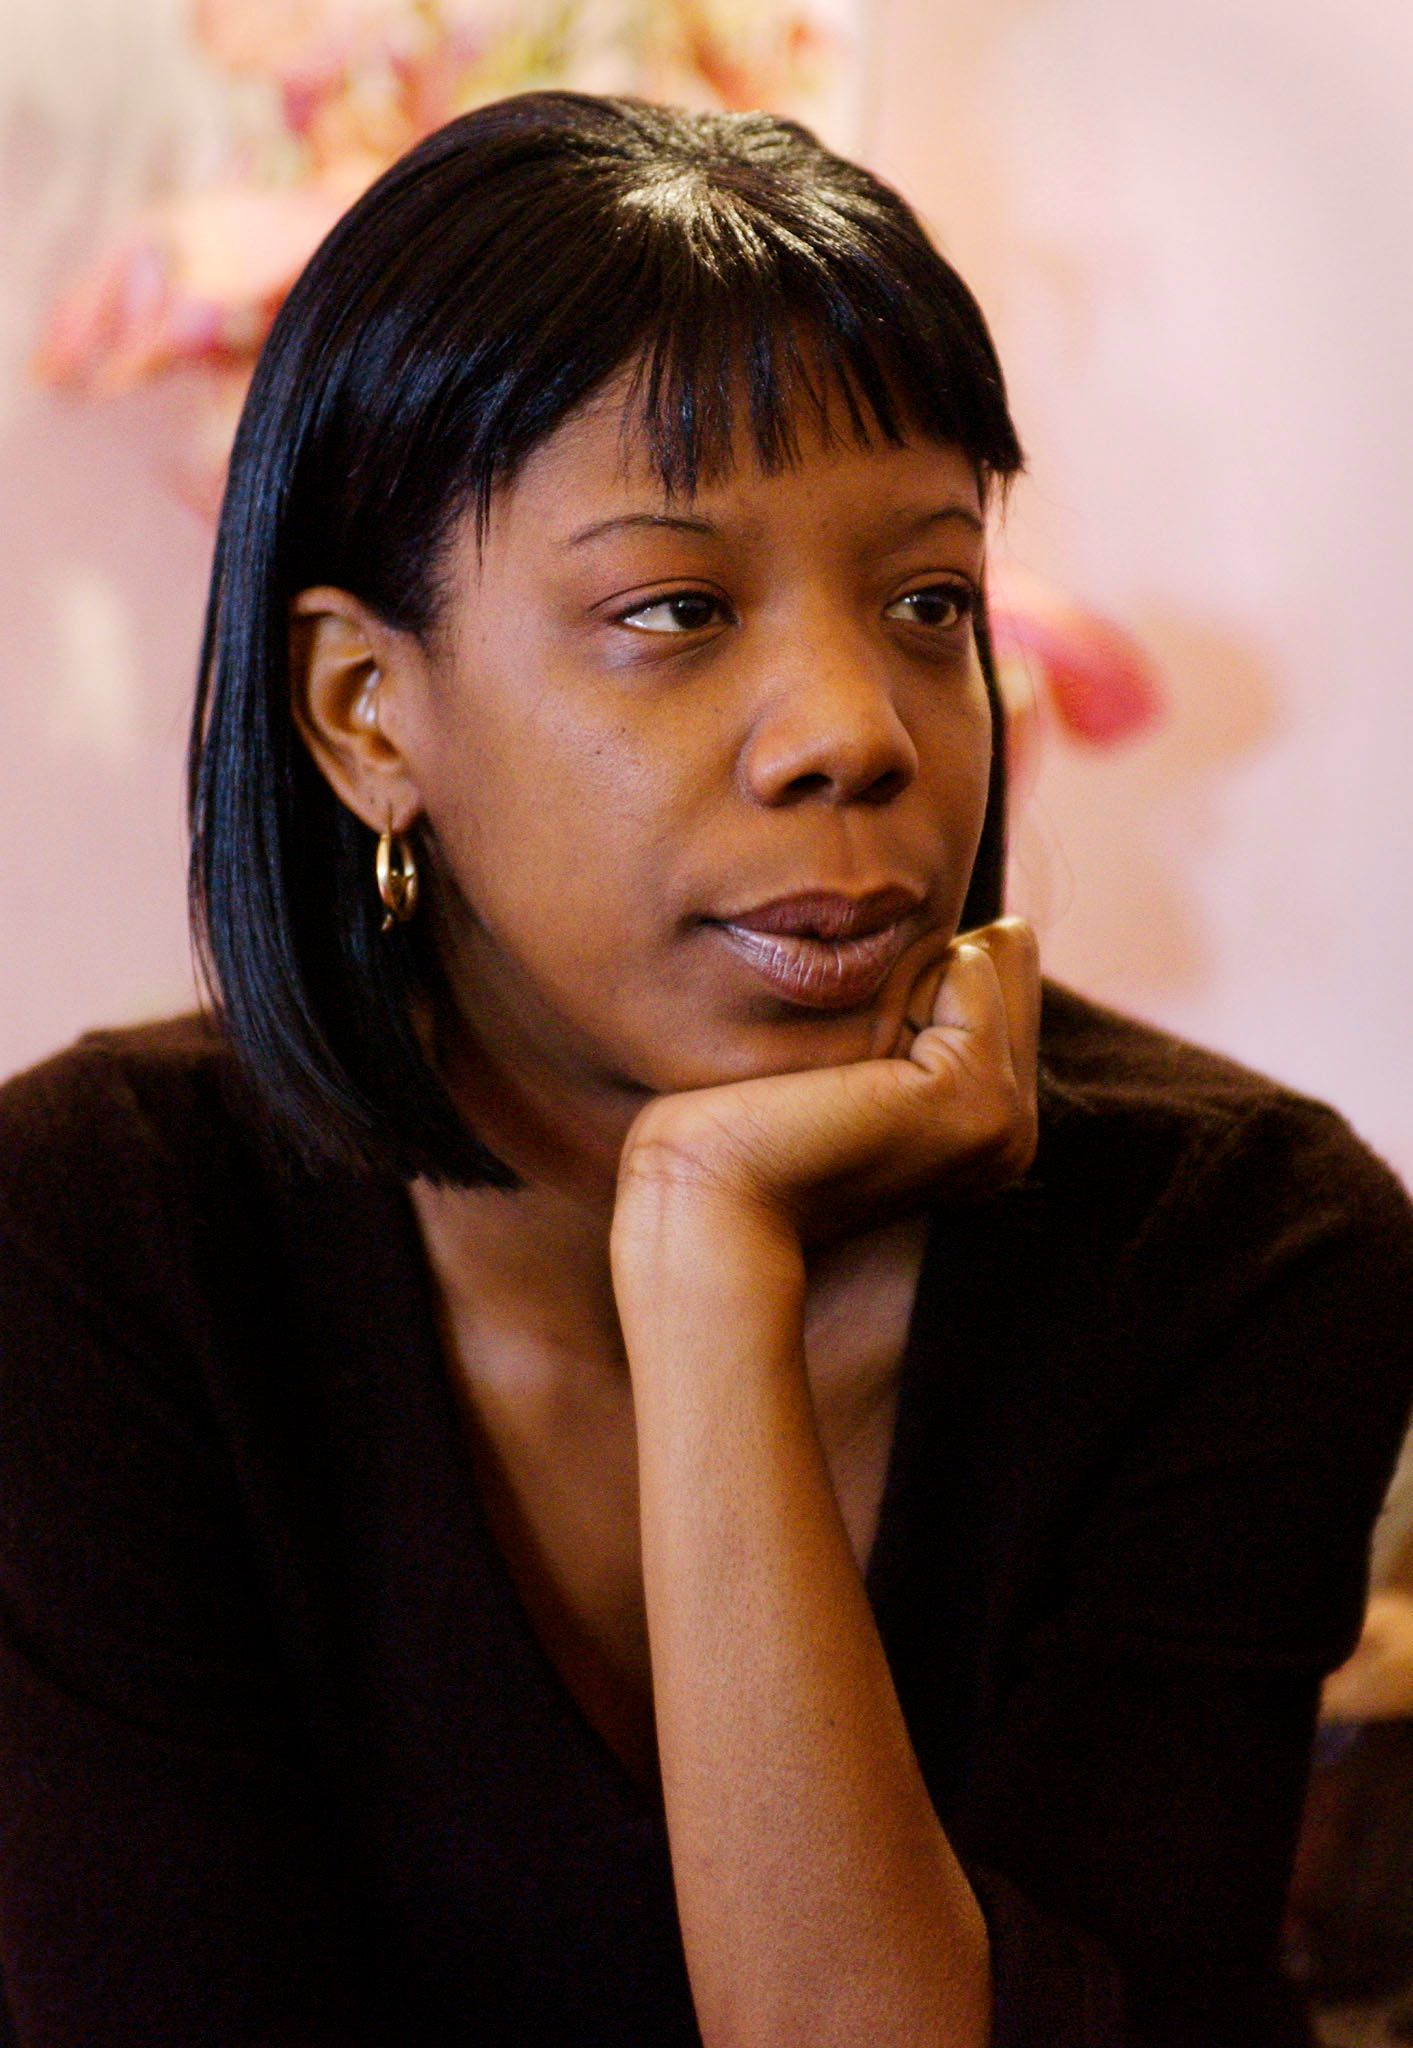 """<span class='image-component__caption' itemprop=""""caption"""">Marcy Borders, survivor of the 11 September 2001 attack on the World Trade Center, is seen during an interview in her apartment, 08 March, 2002, in Bayonne, New Jersey.</span>"""